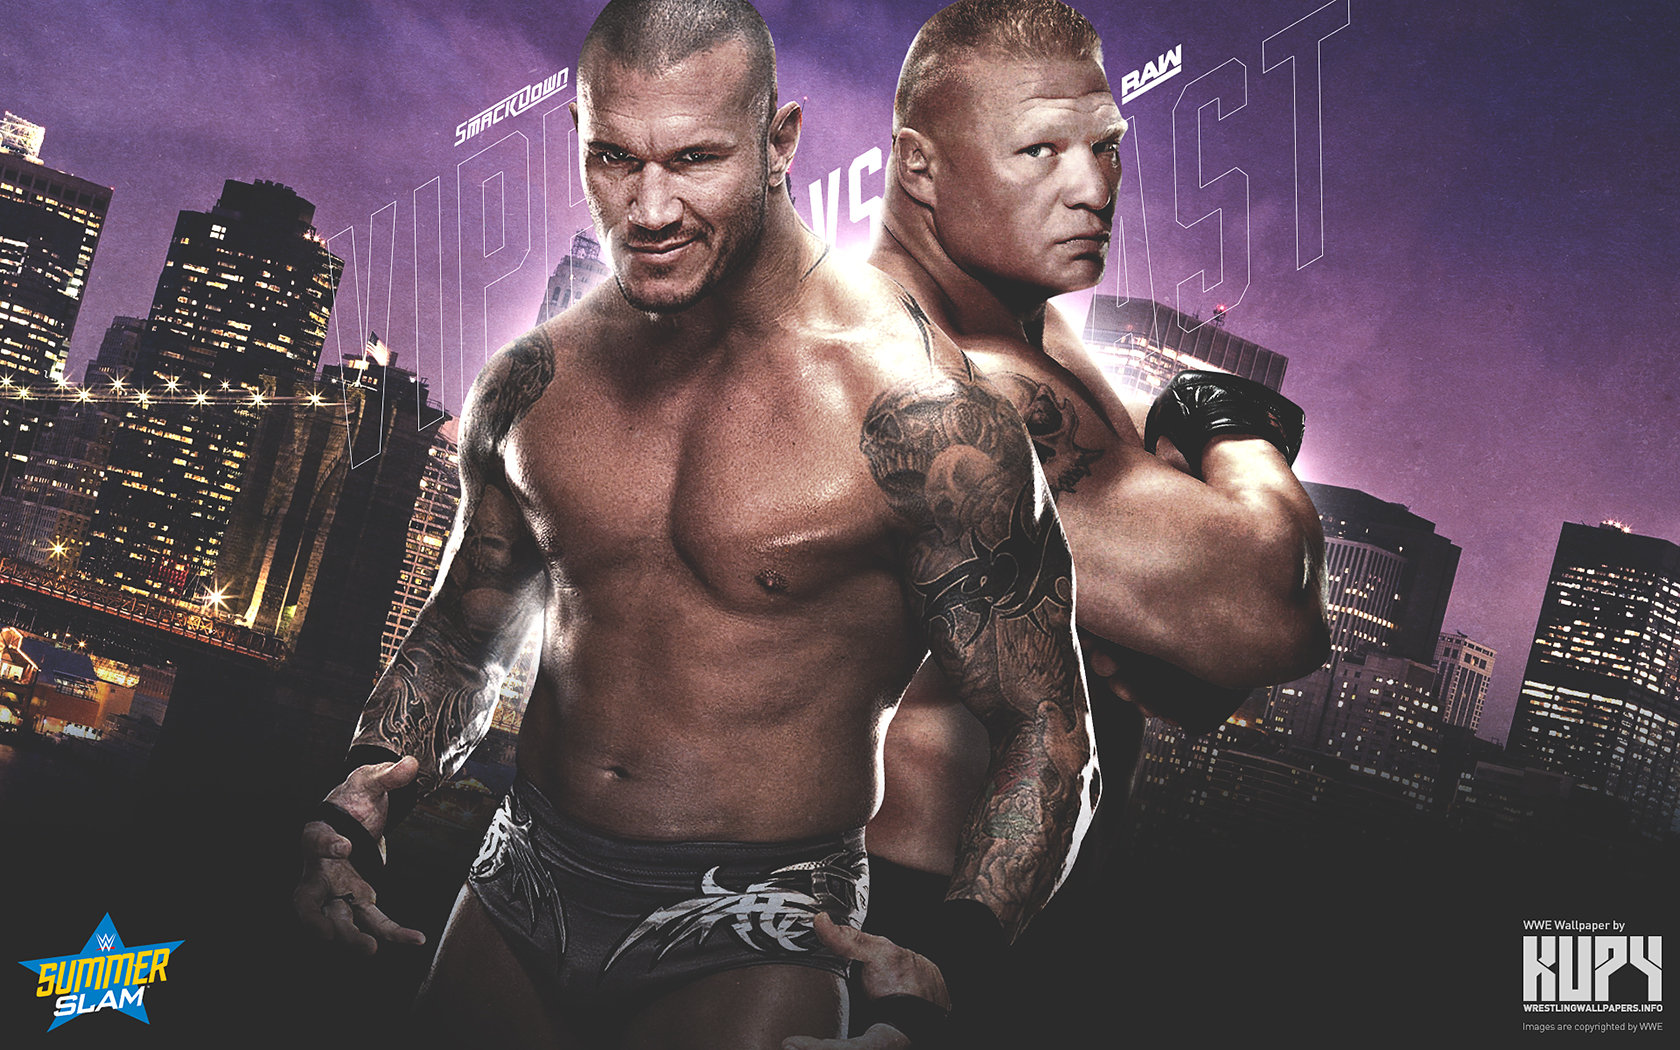 Kupy Wrestling Wallpapers The Latest Source For Your Wwe